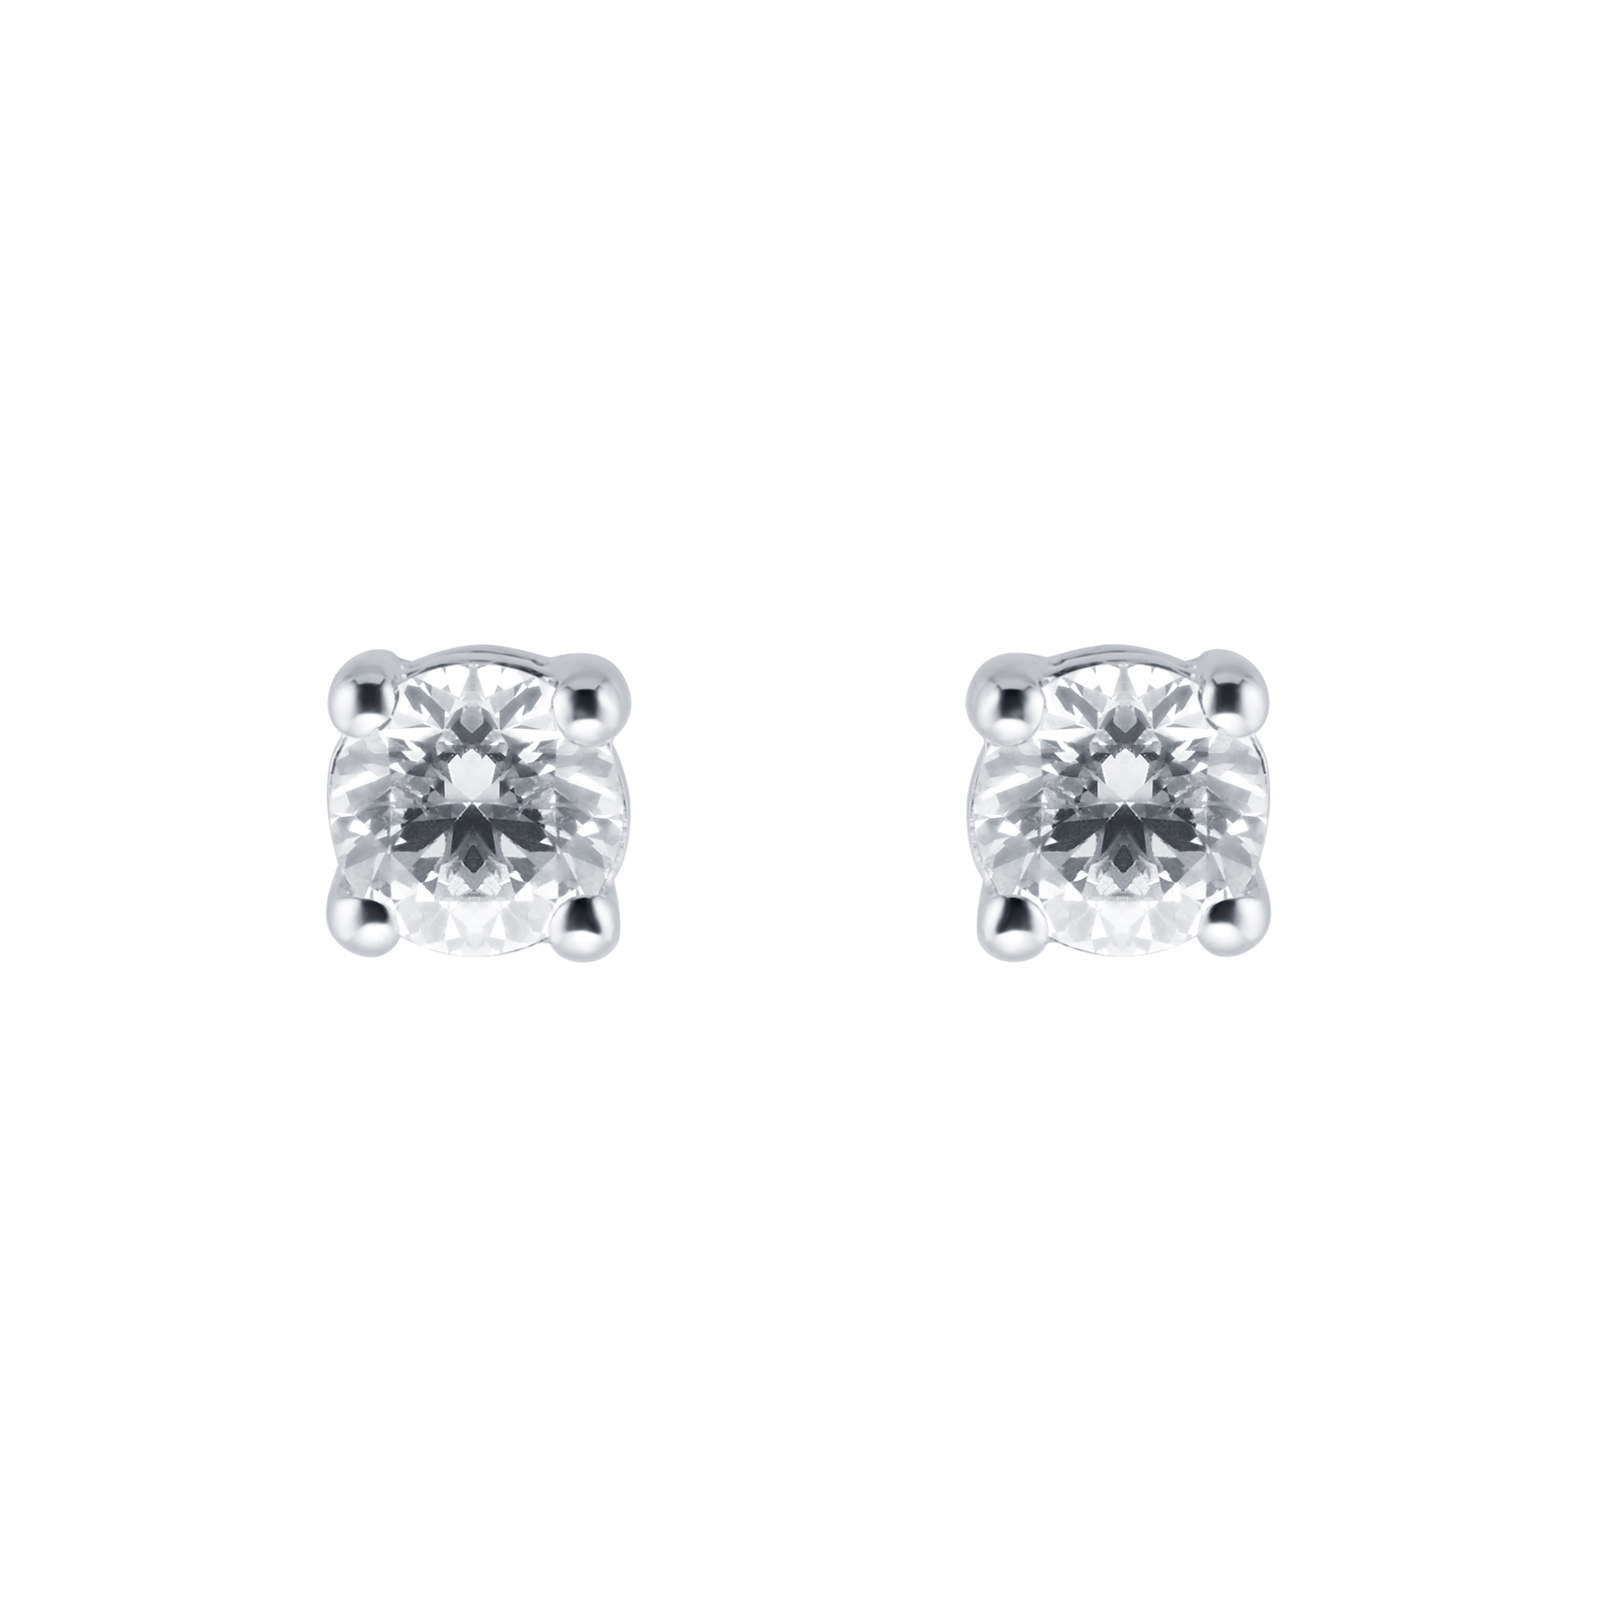 0b24db28b 9ct White Gold Round Brilliant 4mm Cubic Zirconia Stud | Earrings |  Jewellery | Goldsmiths